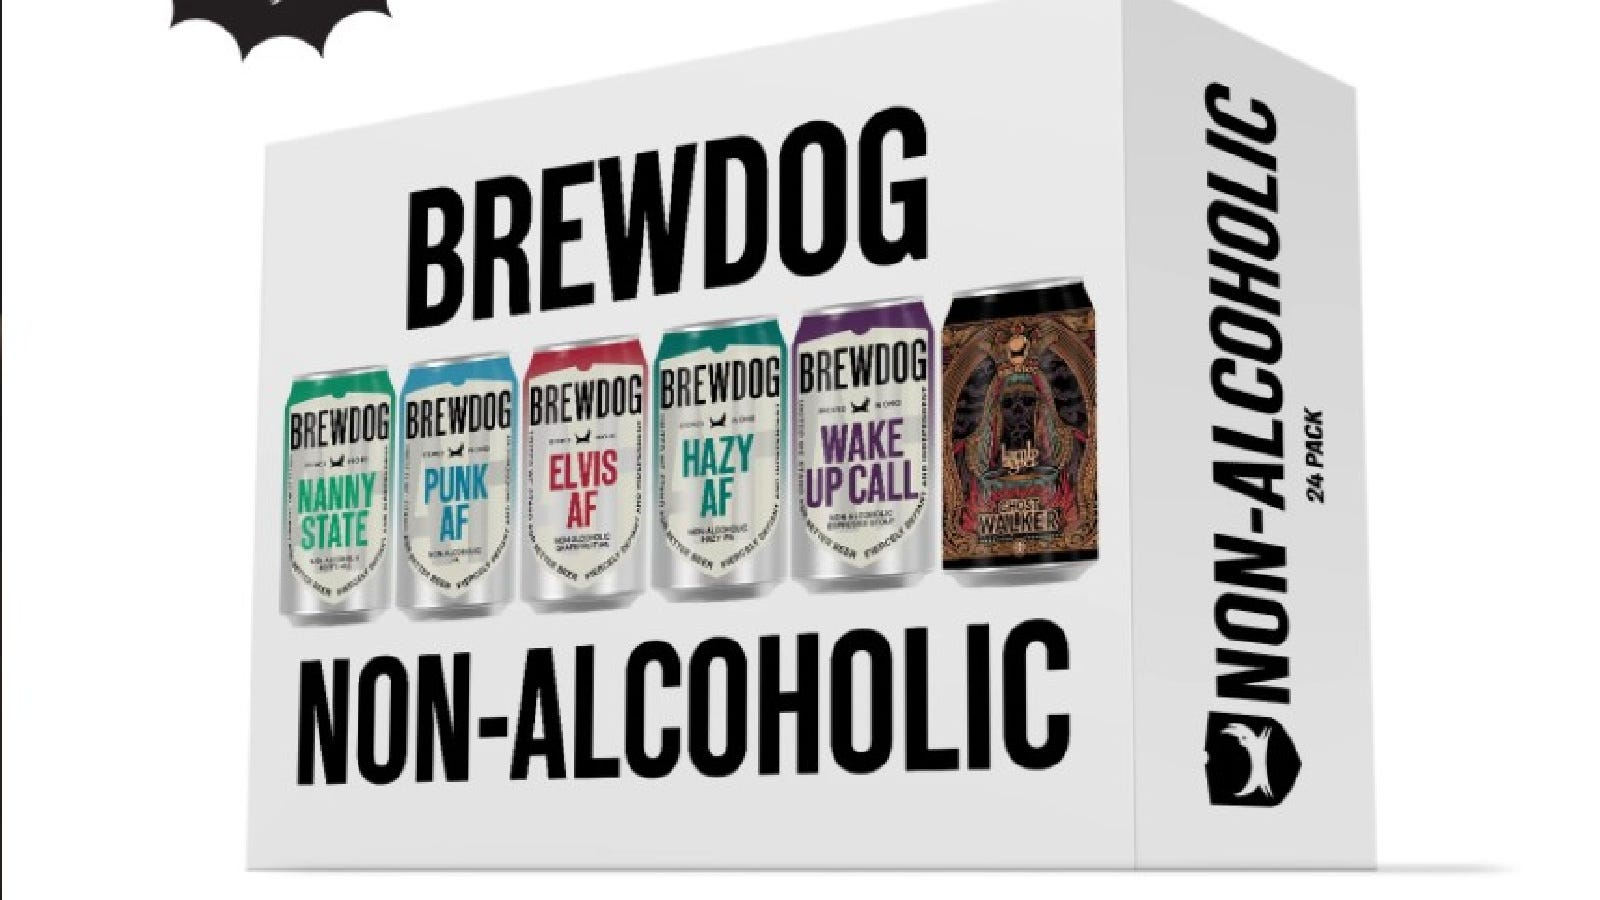 A variety 24-pack of BrewDog non-alcoholic beer displayed on a white background.